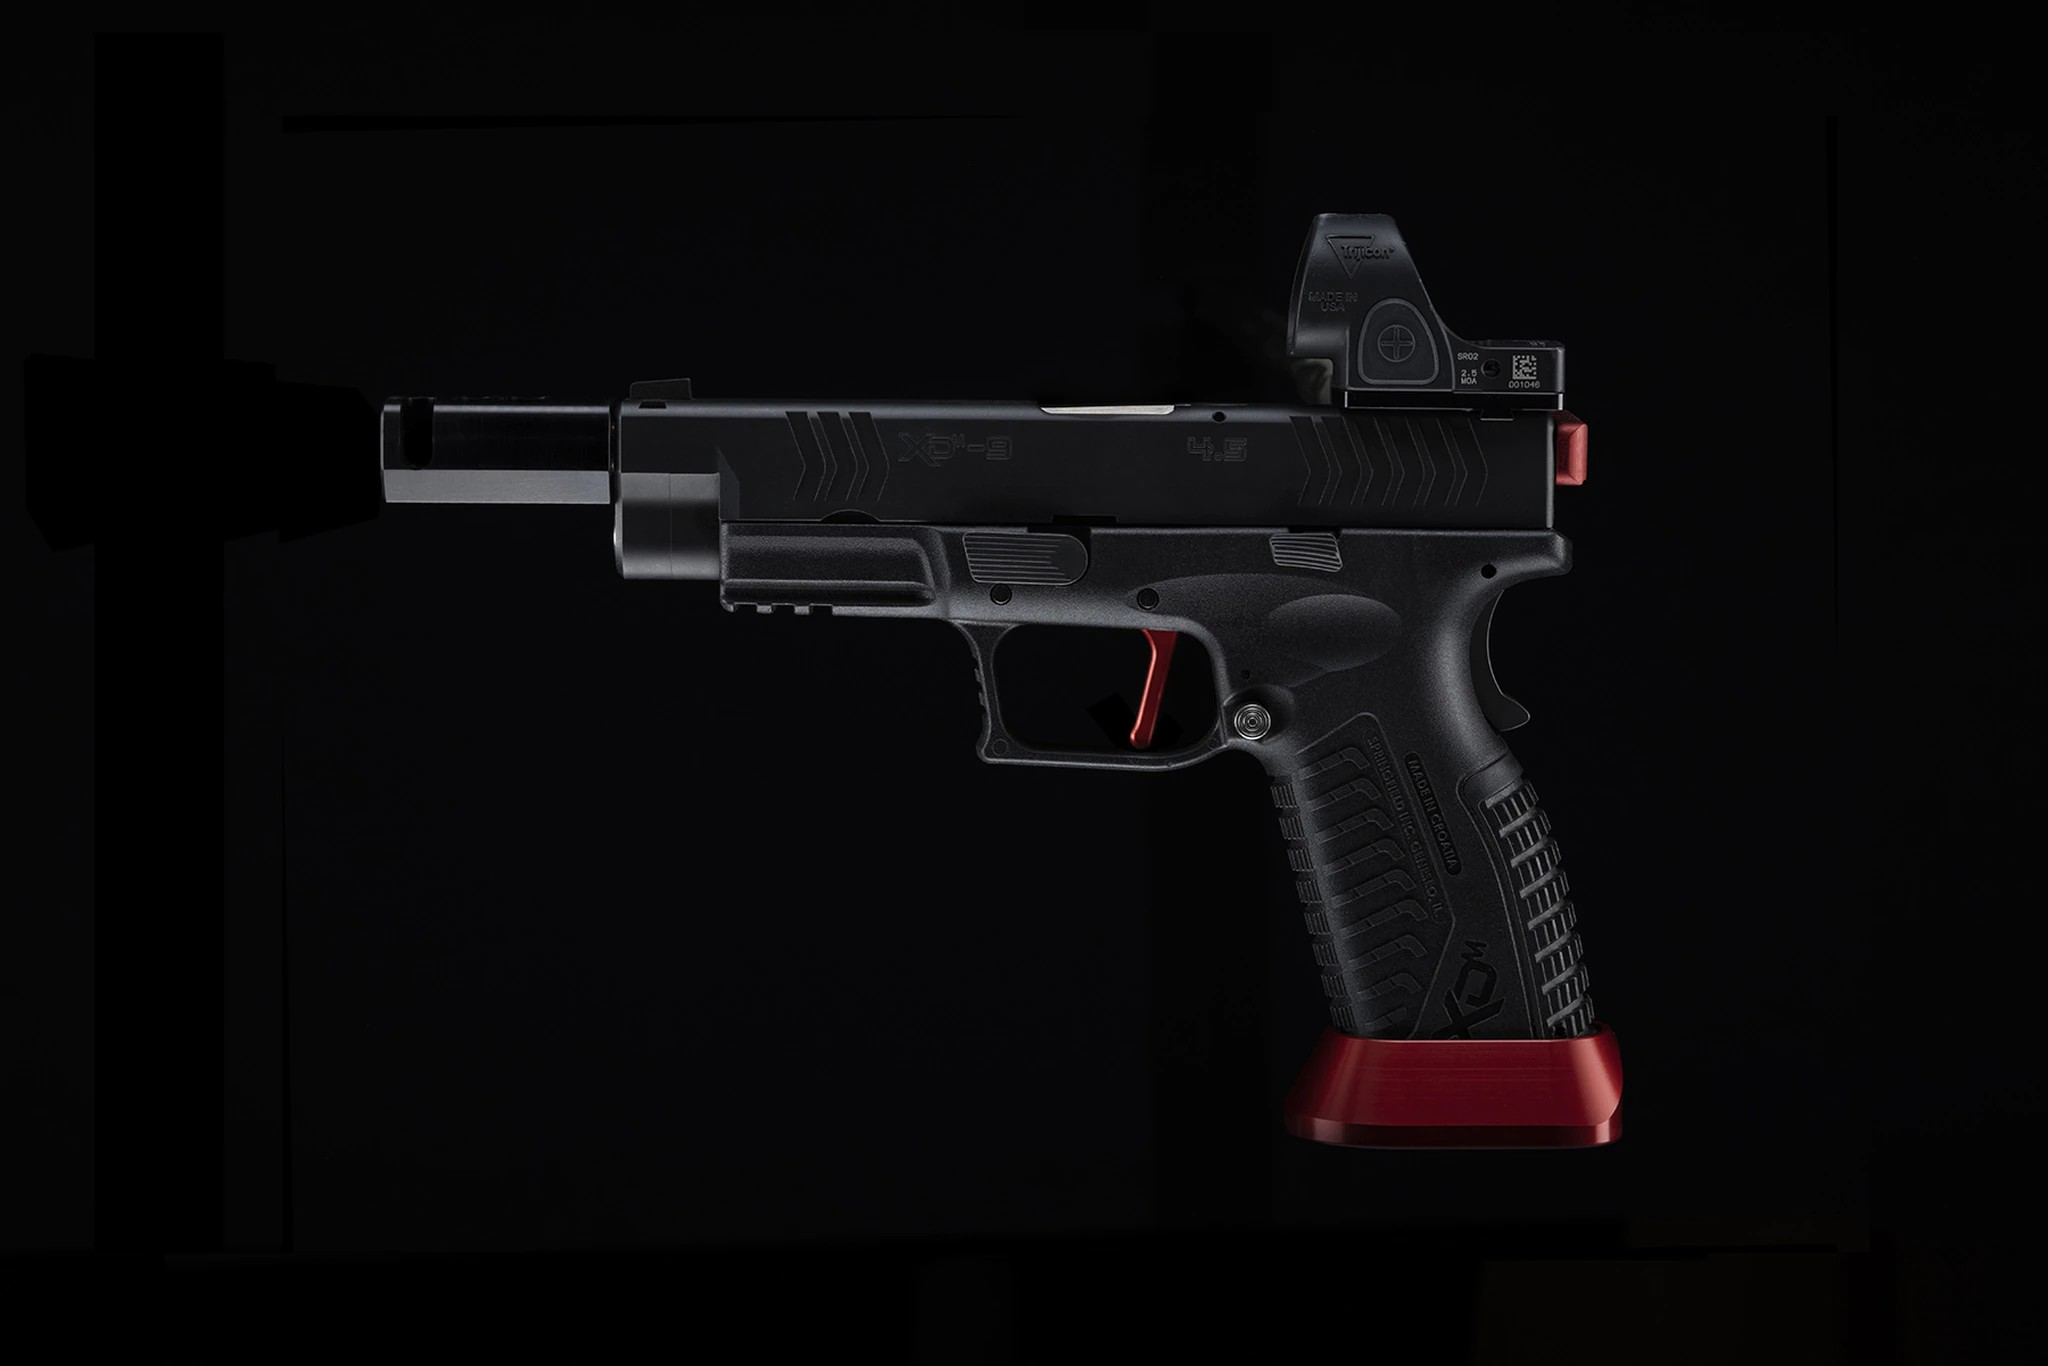 SPRINGER PRECISION EXPANDS SUPPORT FOR SPRINGFIELD ARMORY WITH NEW FLAT TRIGGER